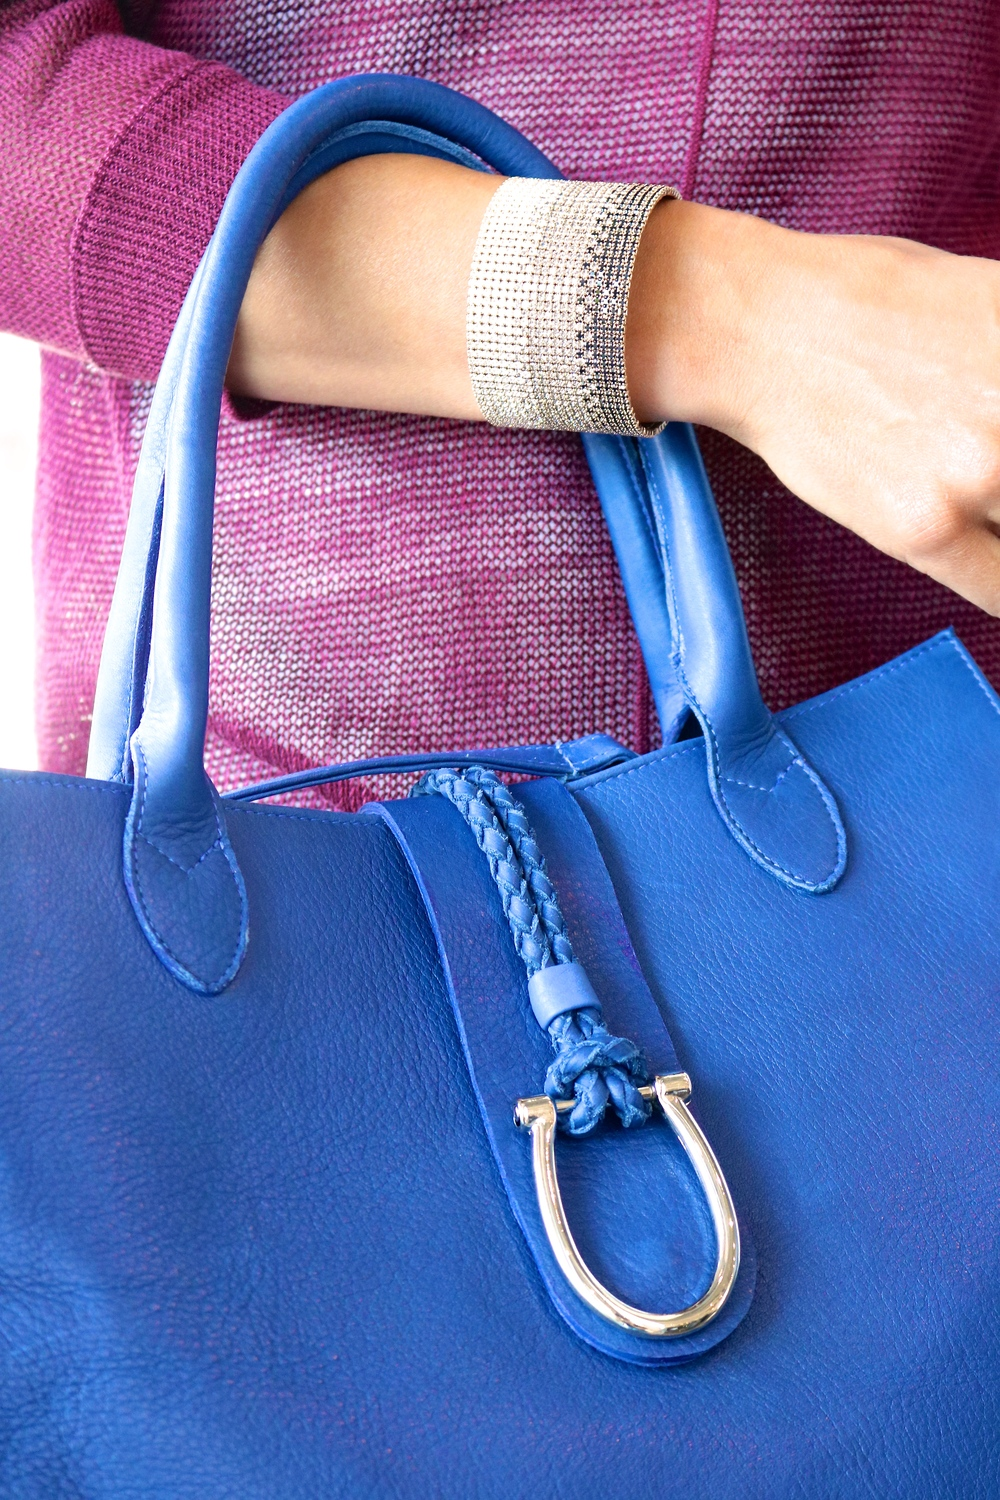 Ombre 20 Row Crystal Bangle (in-store only).  Laggo Maxine Leather/Suede handbag $525.00 (in-store only).